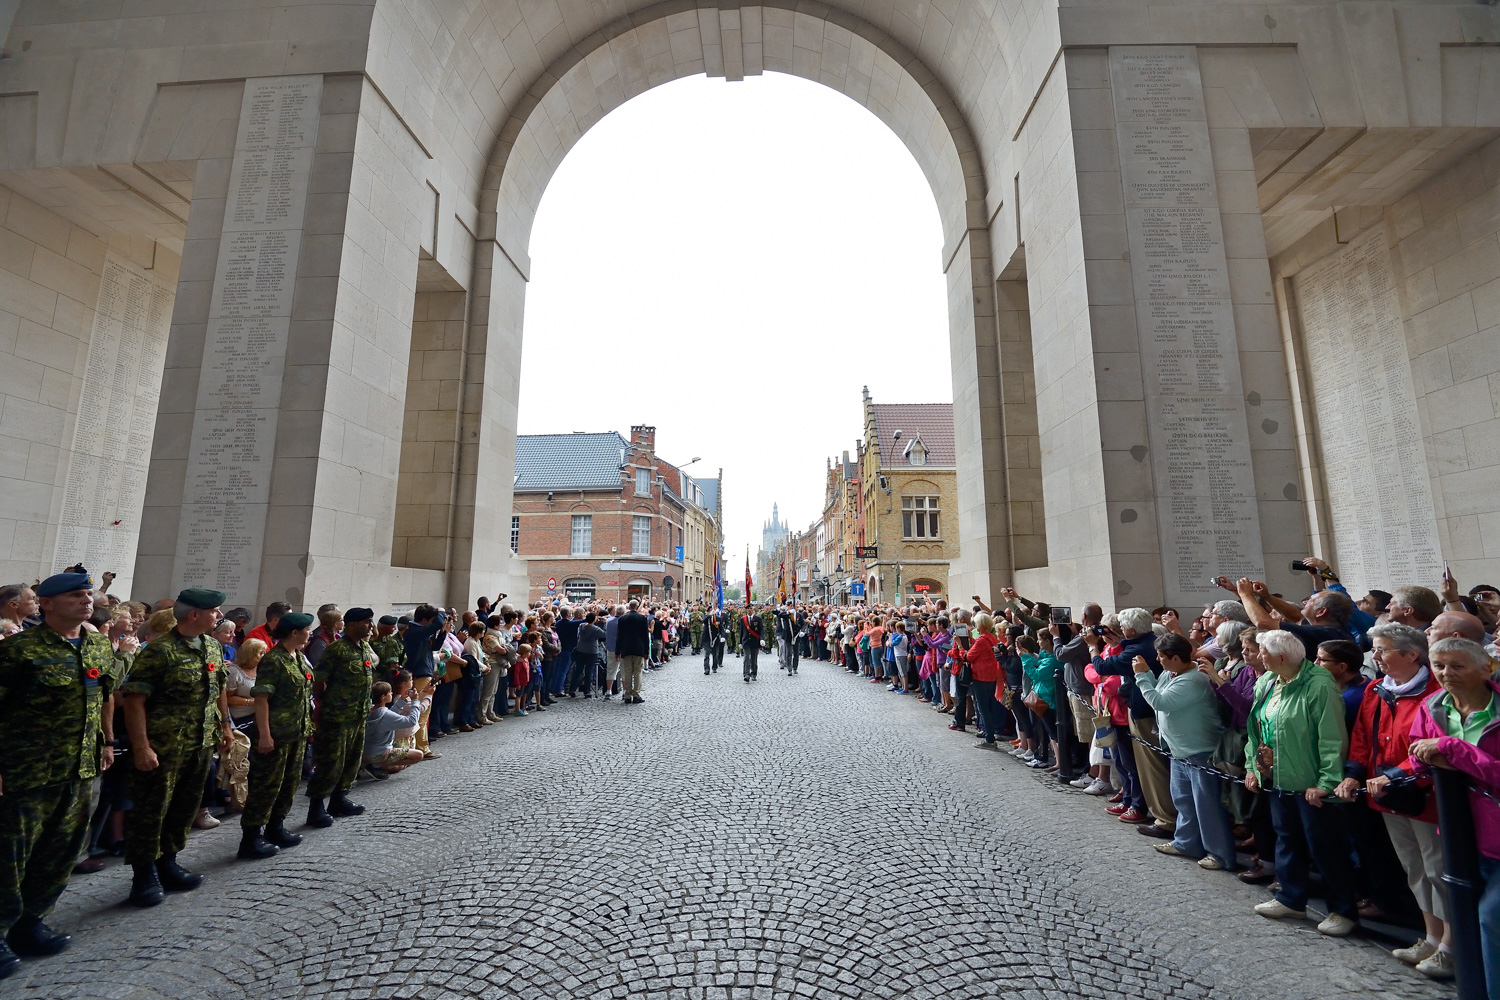 Corporal Andrew Wesley during Remembrance Day ceremonies at Menin Gate in Ypres, Belgium